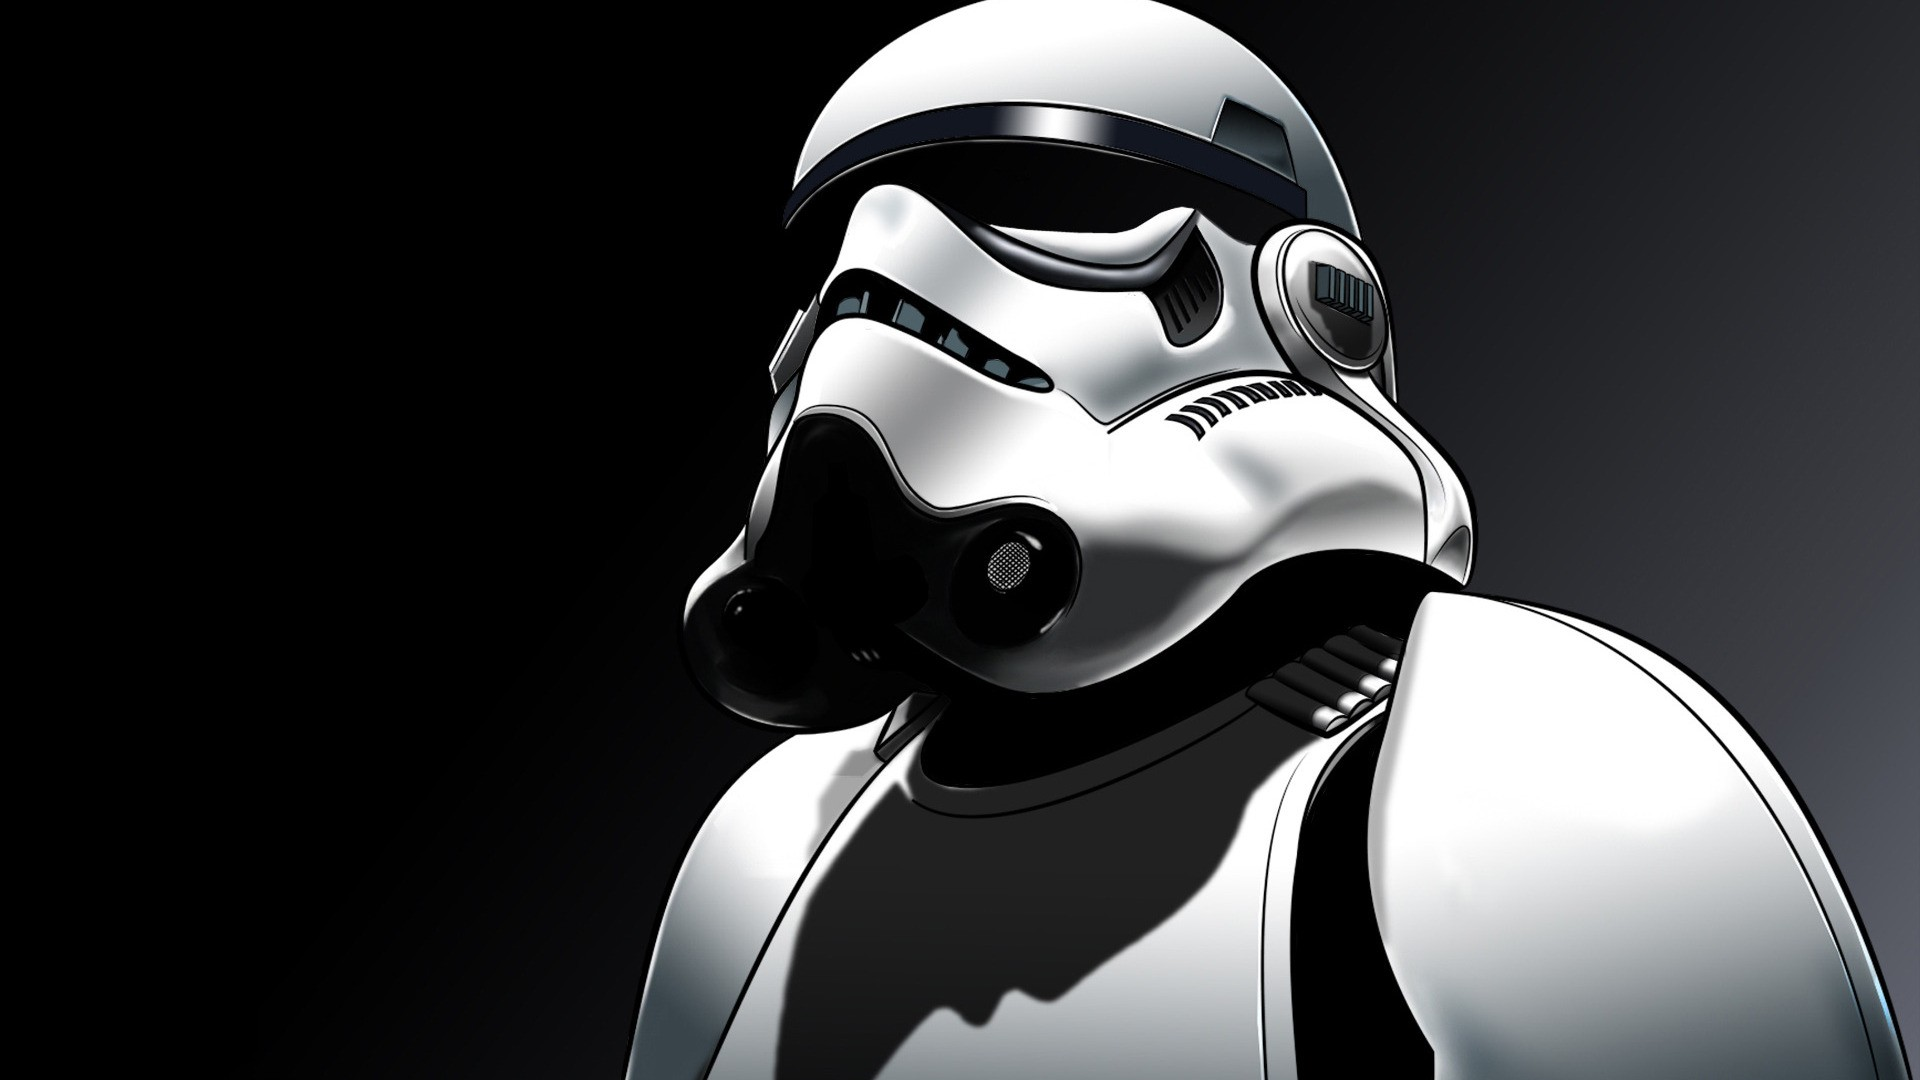 Star Wars Wallpaper 1920x1080 Star Wars Stormtroopers 1920x1080